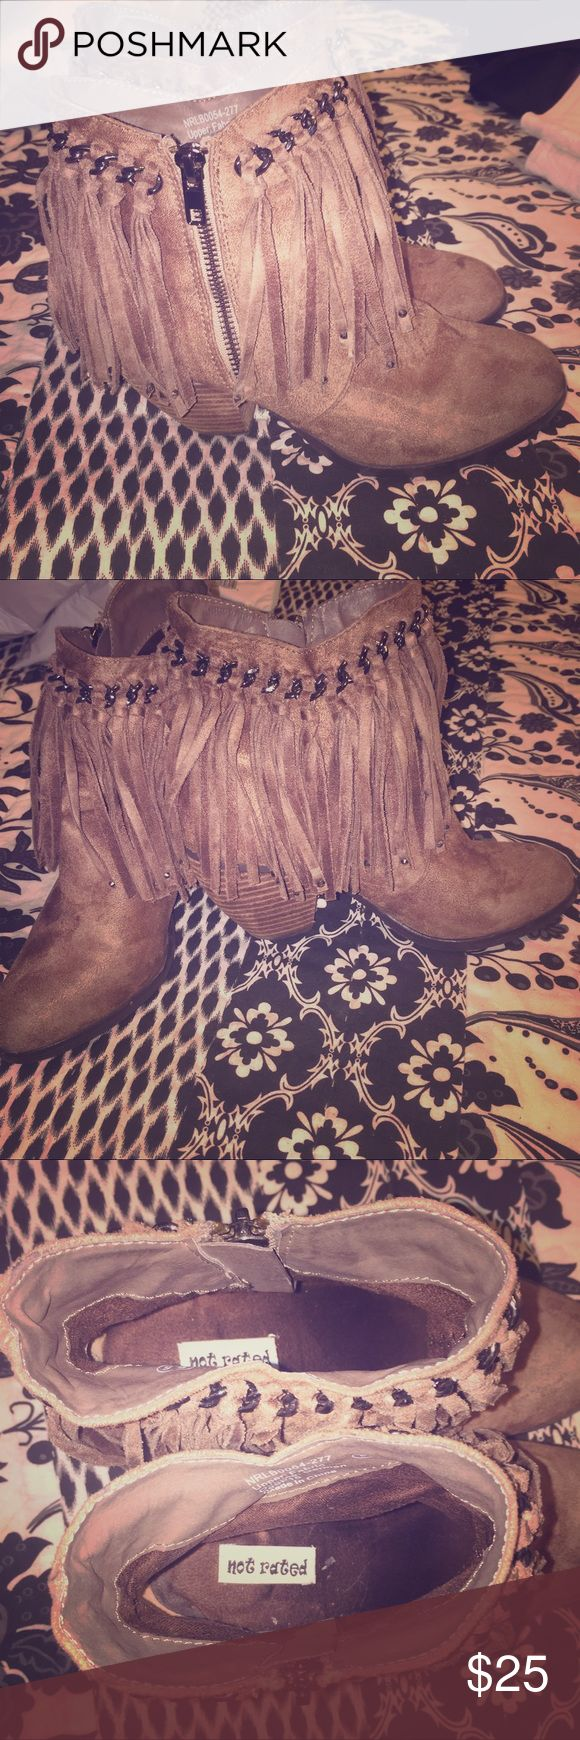 Not Rated Fringe Booties Taupe Not Rated brand fringe booties in excellent condition! Worn only a couple of times! Size 6.5 but I normally wear a 7 so they will fit if you are a 7. Super cute!!! Not Rated Shoes Ankle Boots & Booties